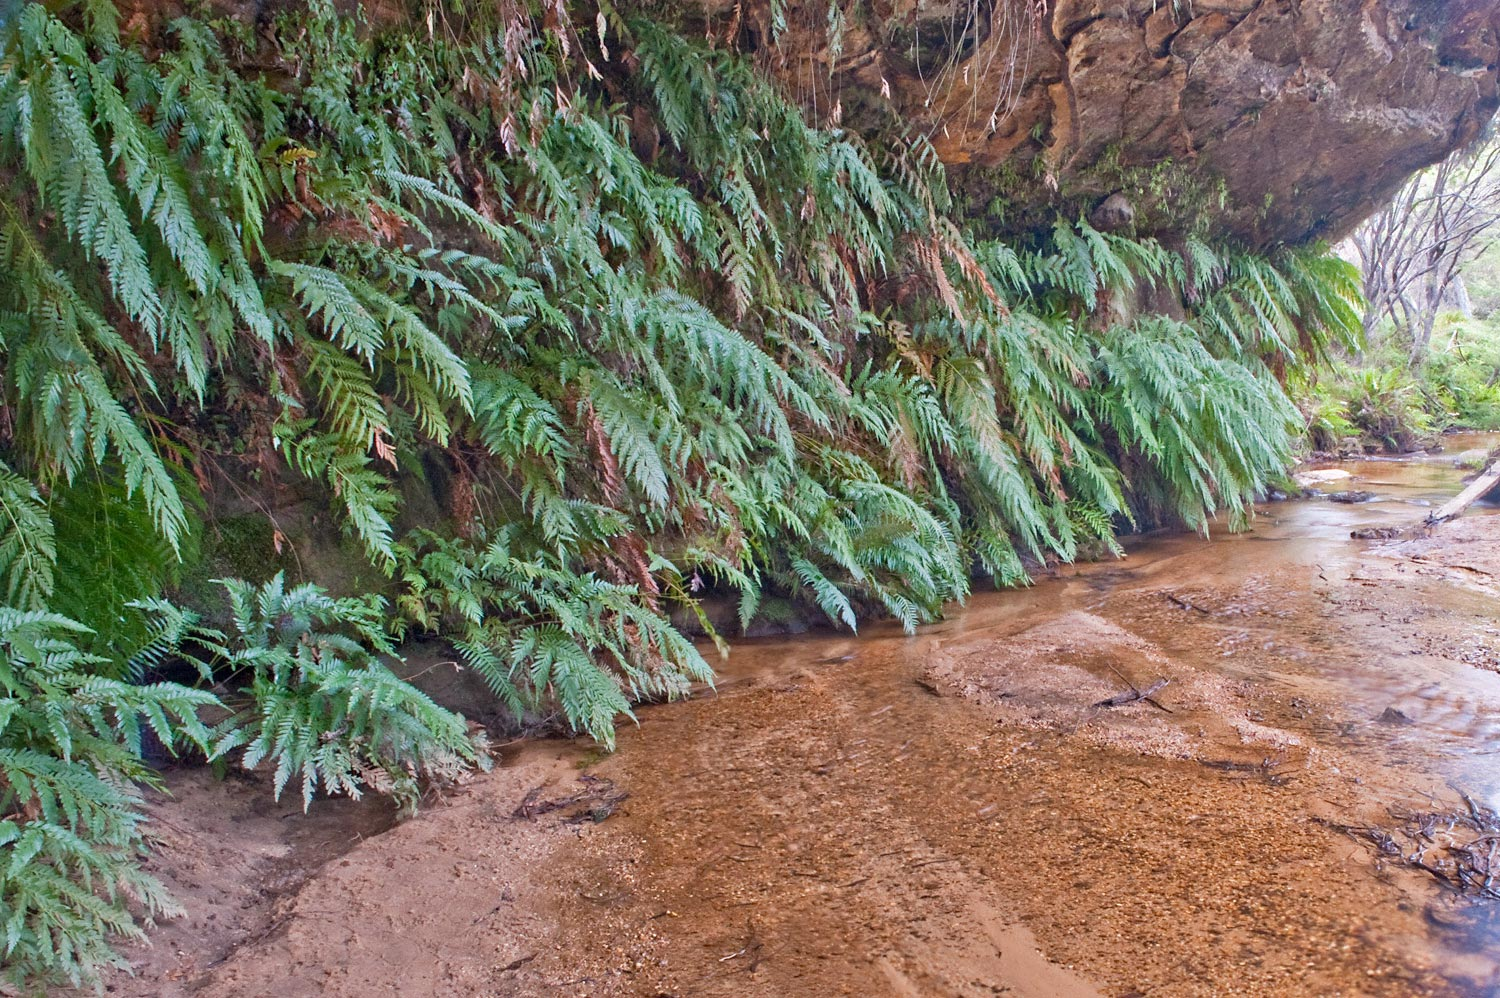 Warren-Hinder-LR-Ferns-in-Water-Darwin.jpg